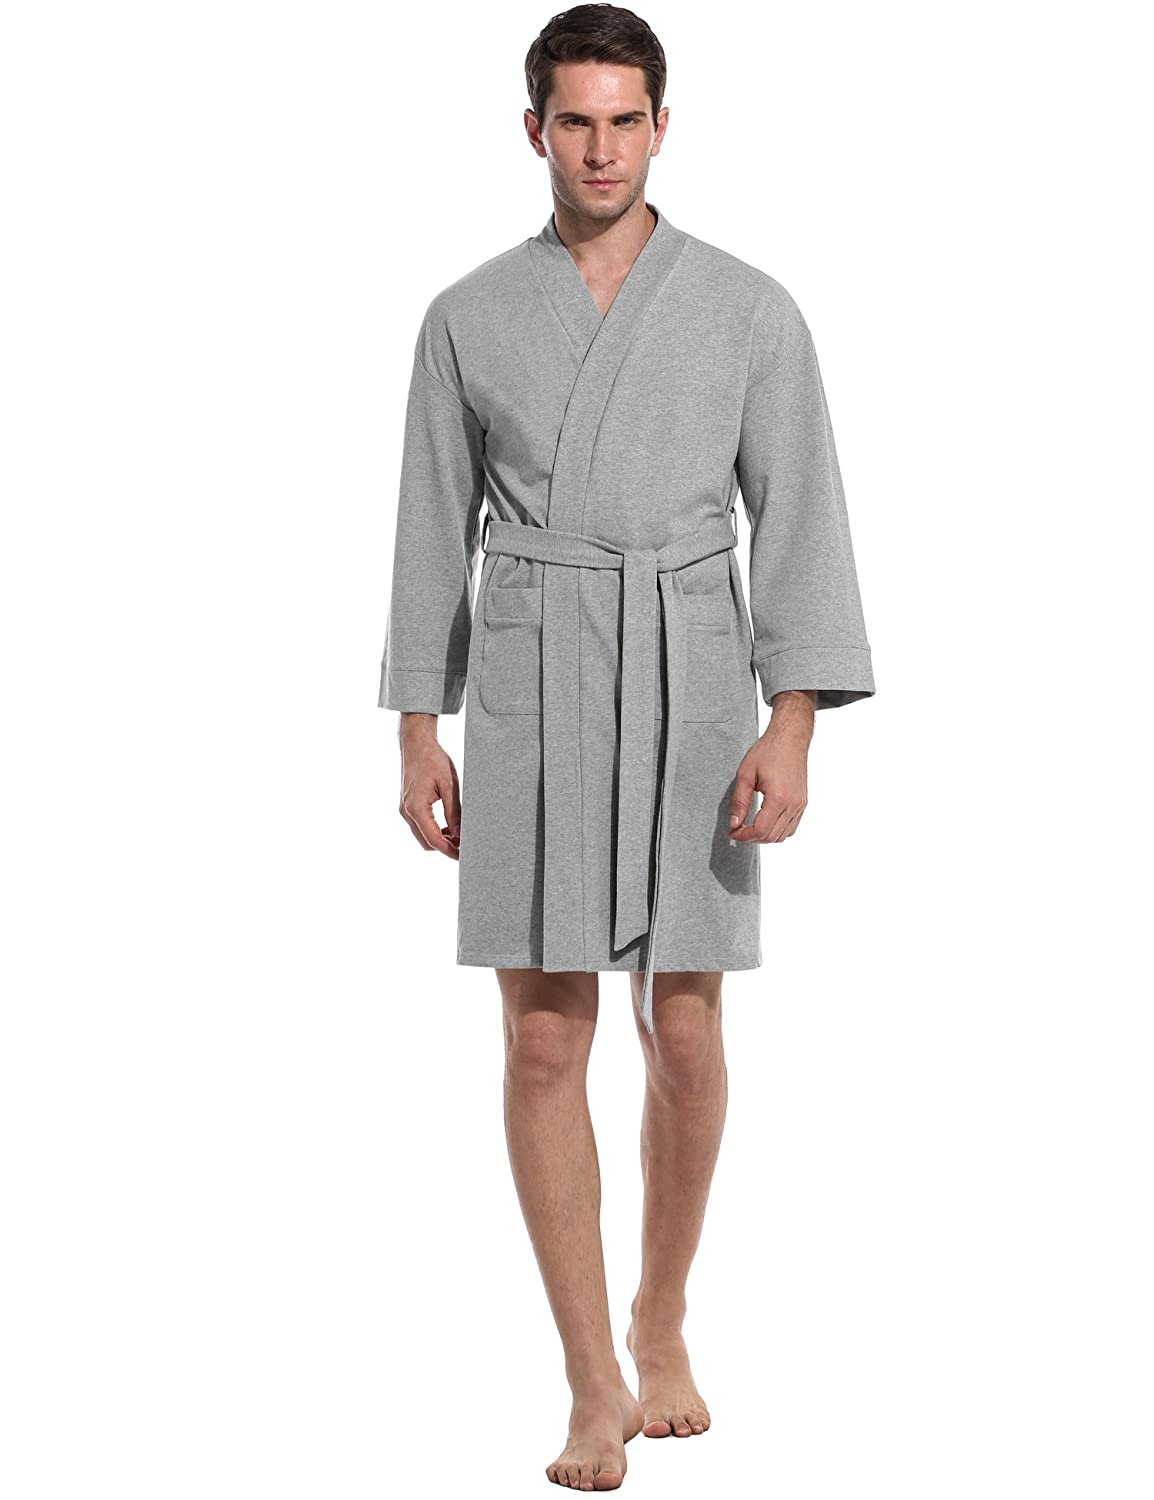 Avidlove Mens Spa Bathrobe Hotel Kimono Long Robe Lightweight Loungewear *ALK005090